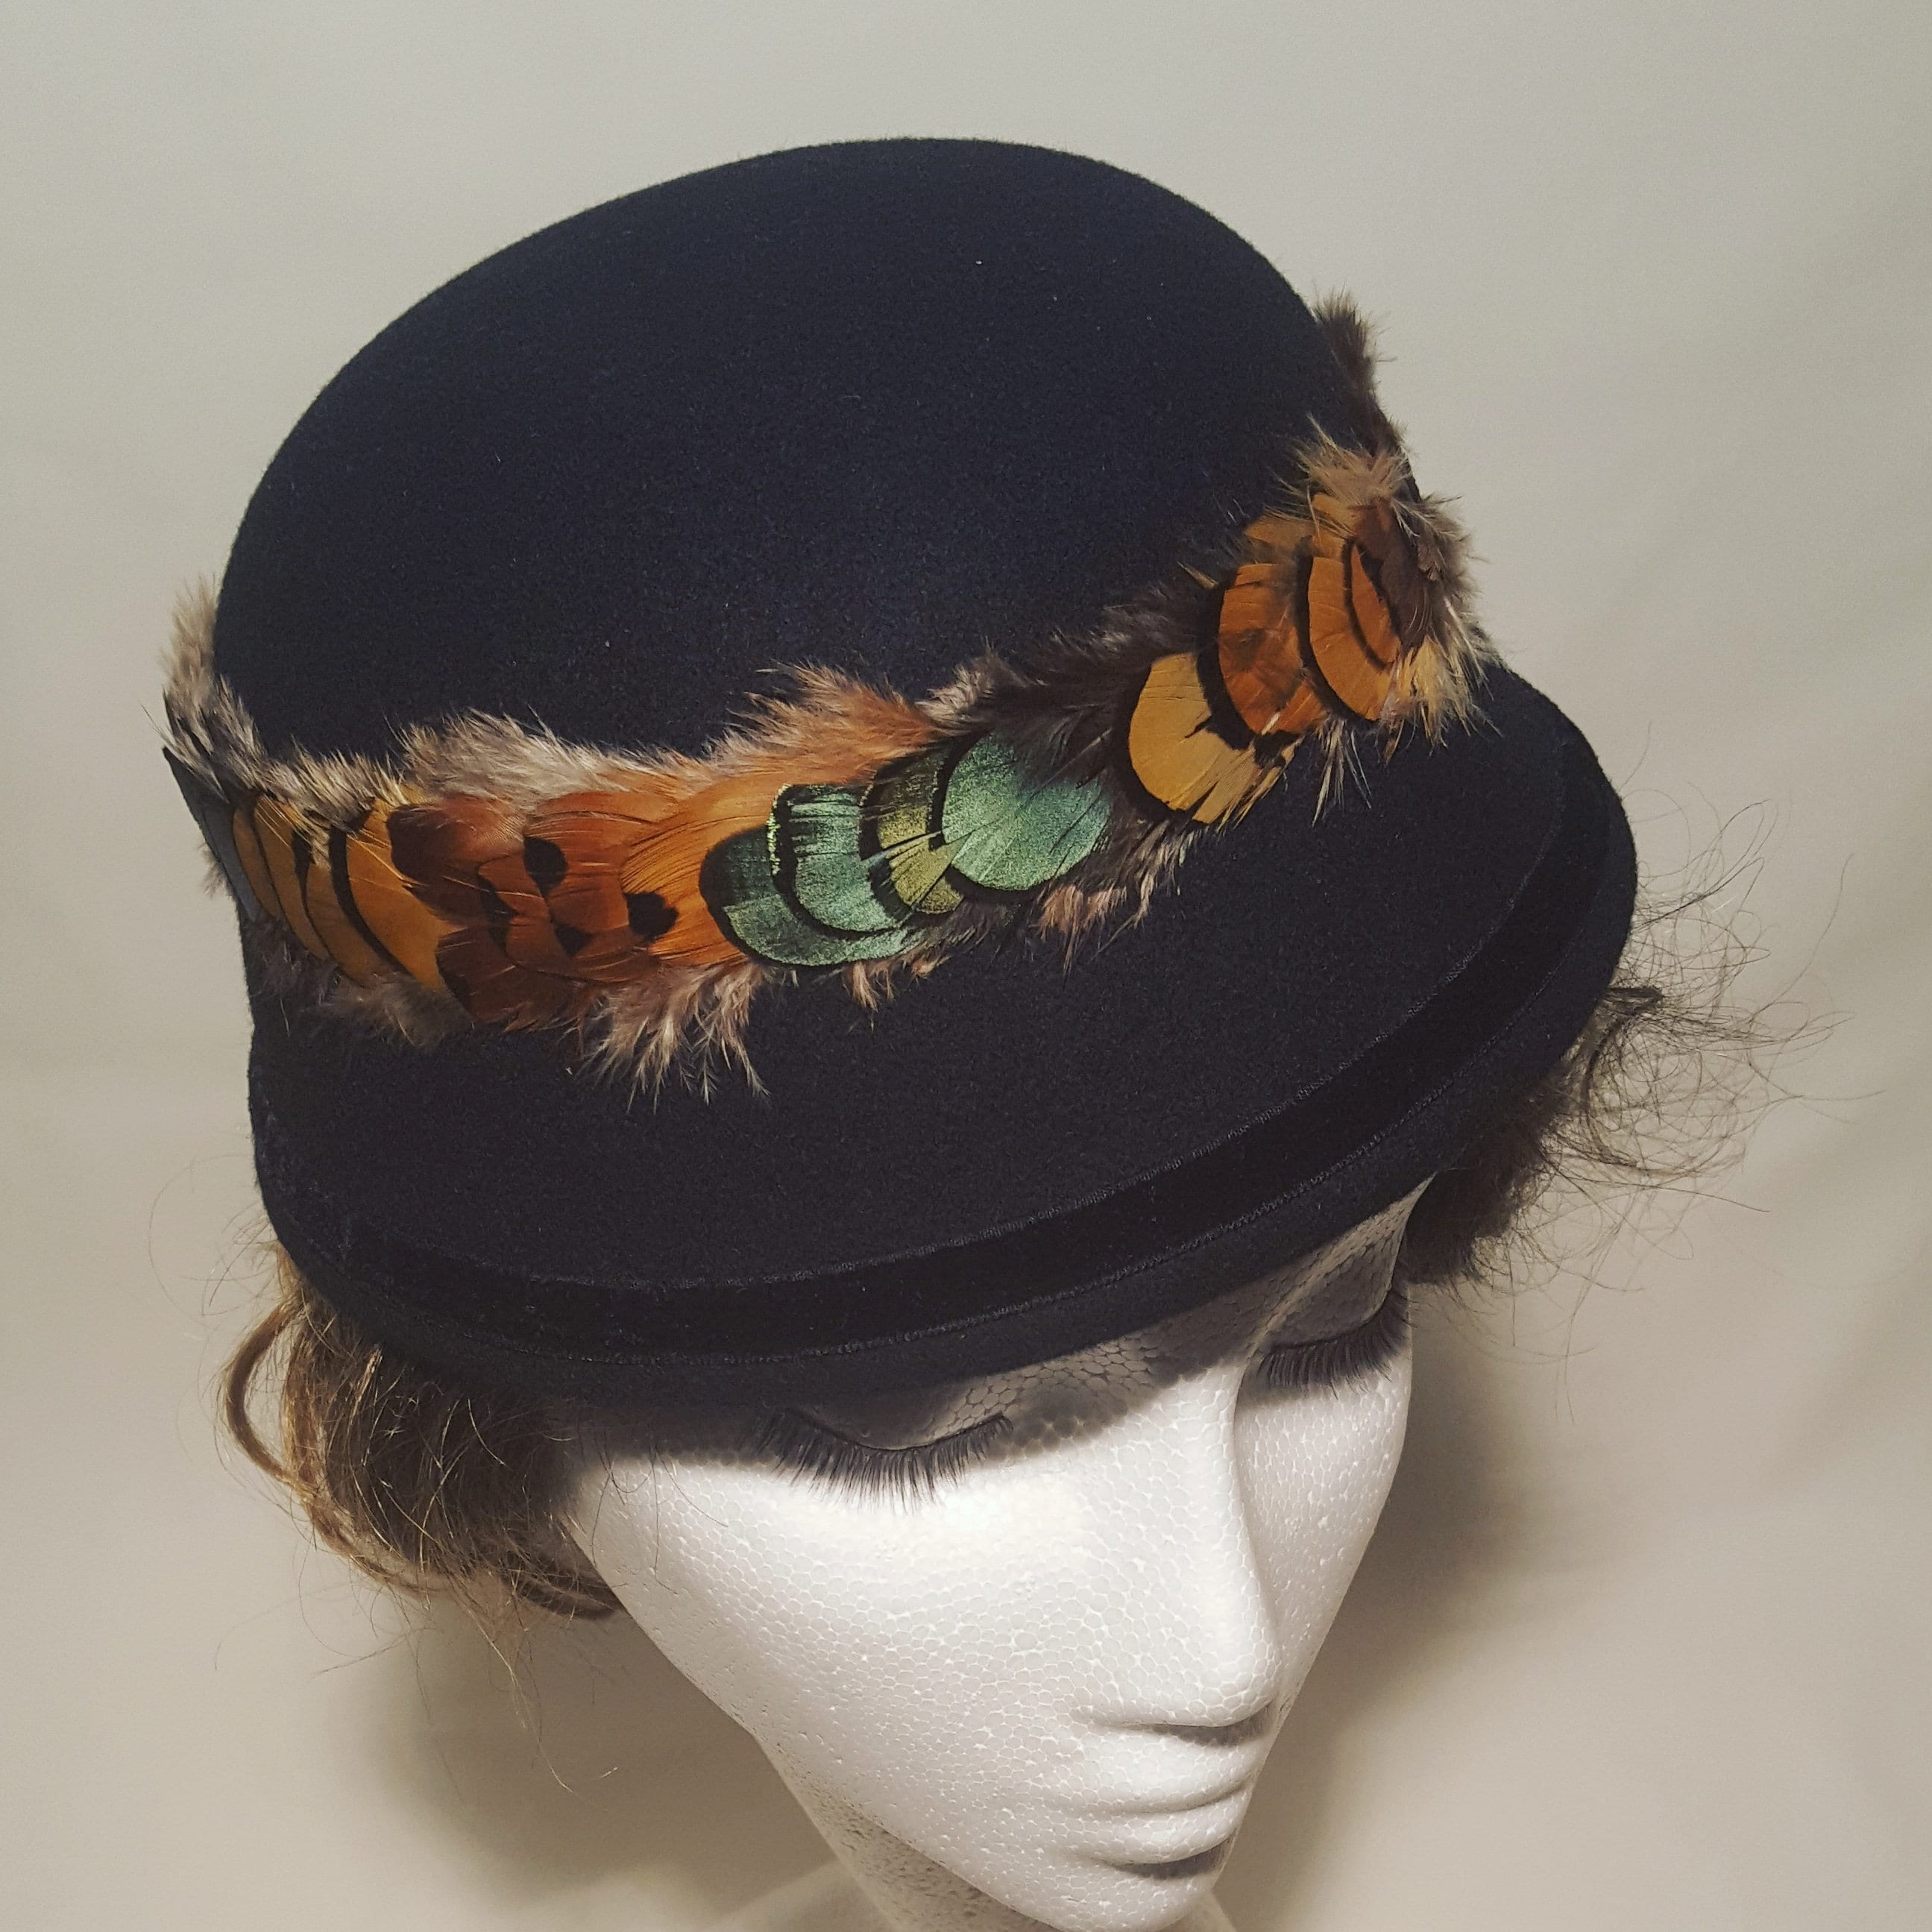 b005437bc76f0 Free DHL upgrade! Black Felt Cloche Hat Natural Feathers Crown ...